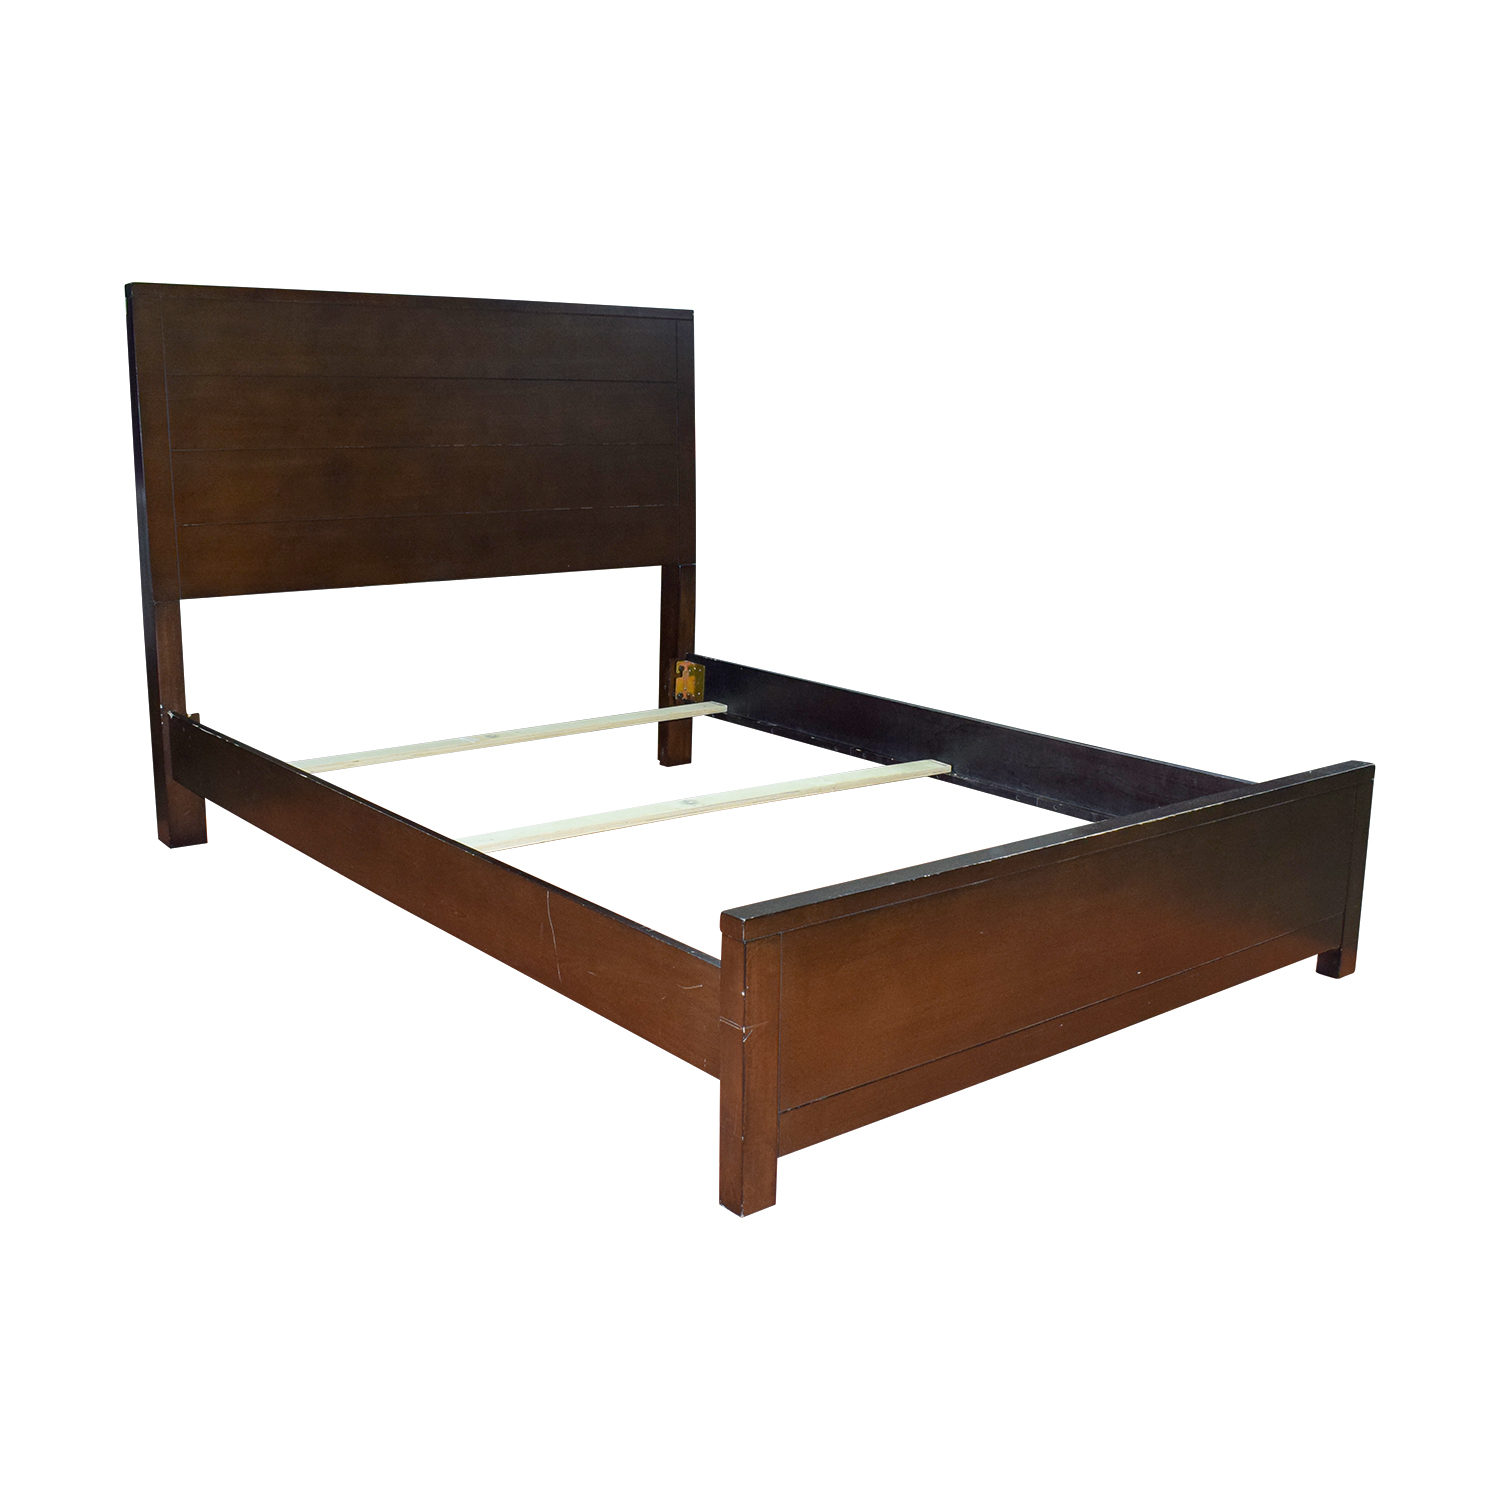 79 off macy s macy s tribeca full bed frame beds 10236 | macys tribeca full bed frame second hand